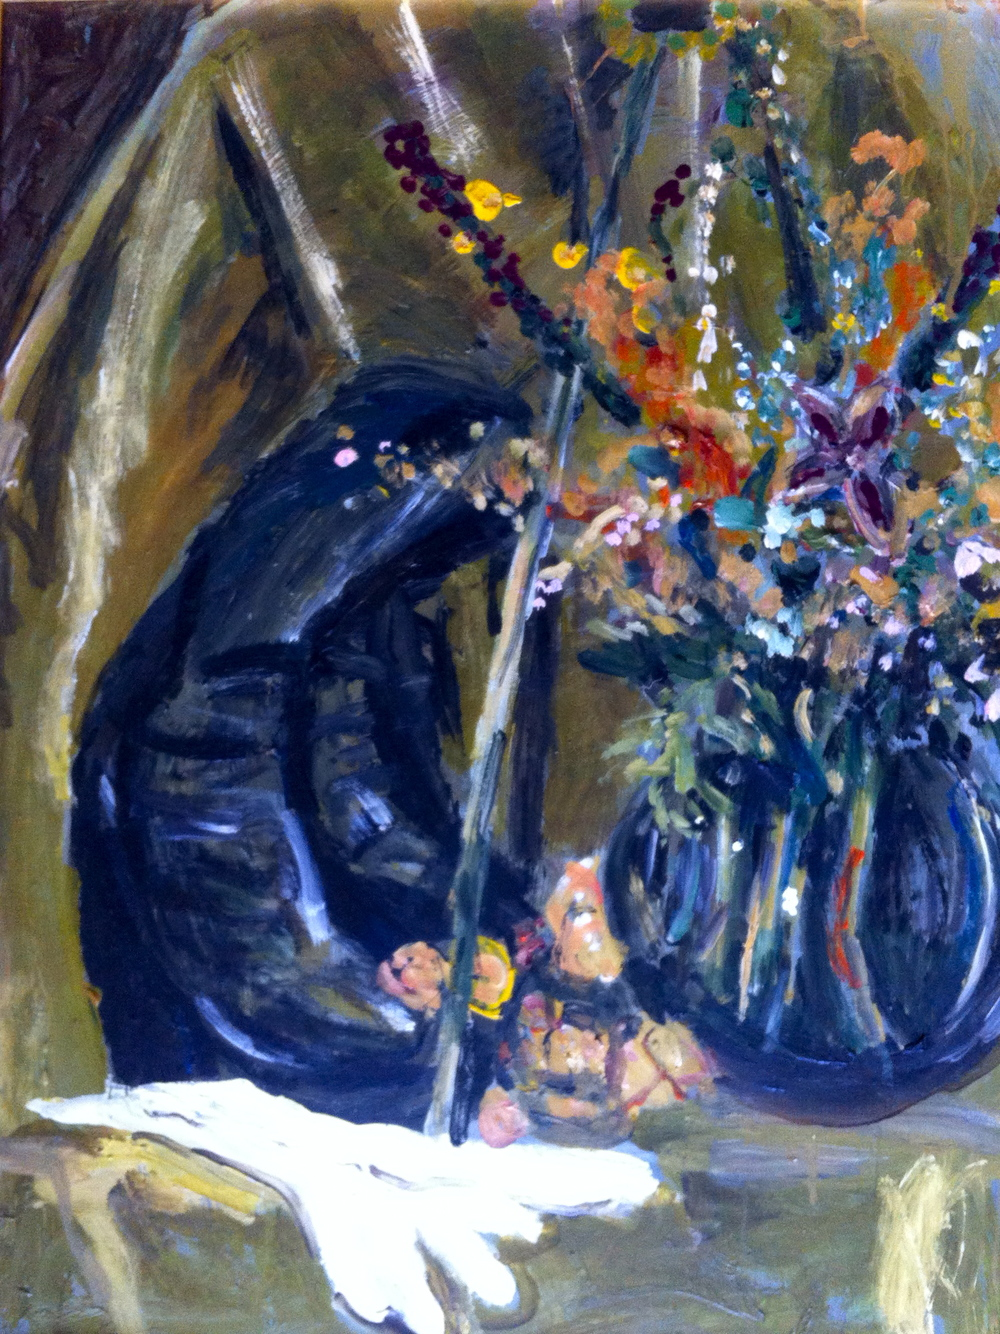 Still Life with Boots and Gloves